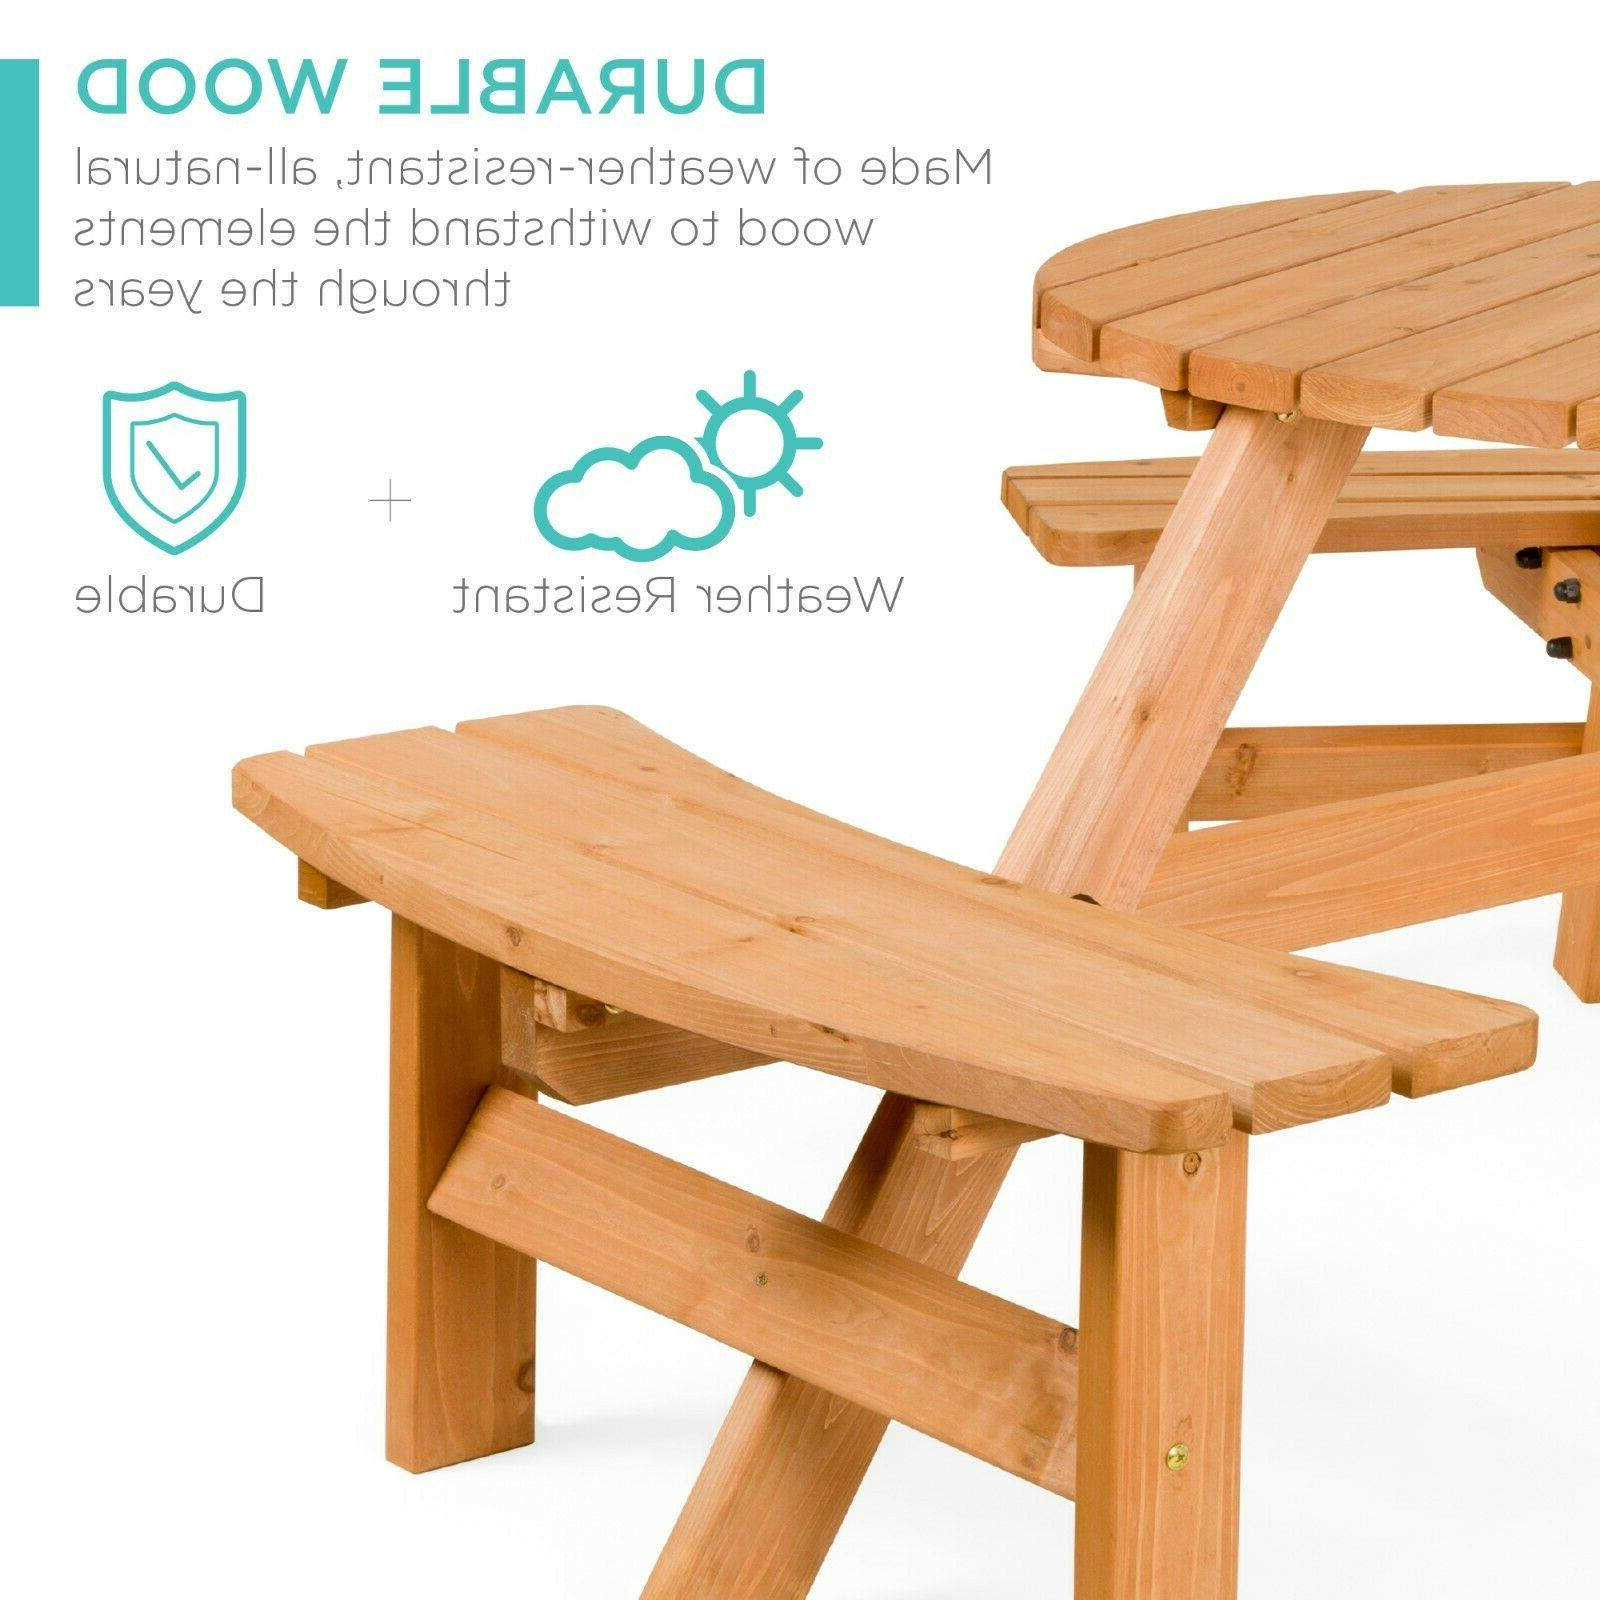 Best Choice 6-Person Circular Table Built-in